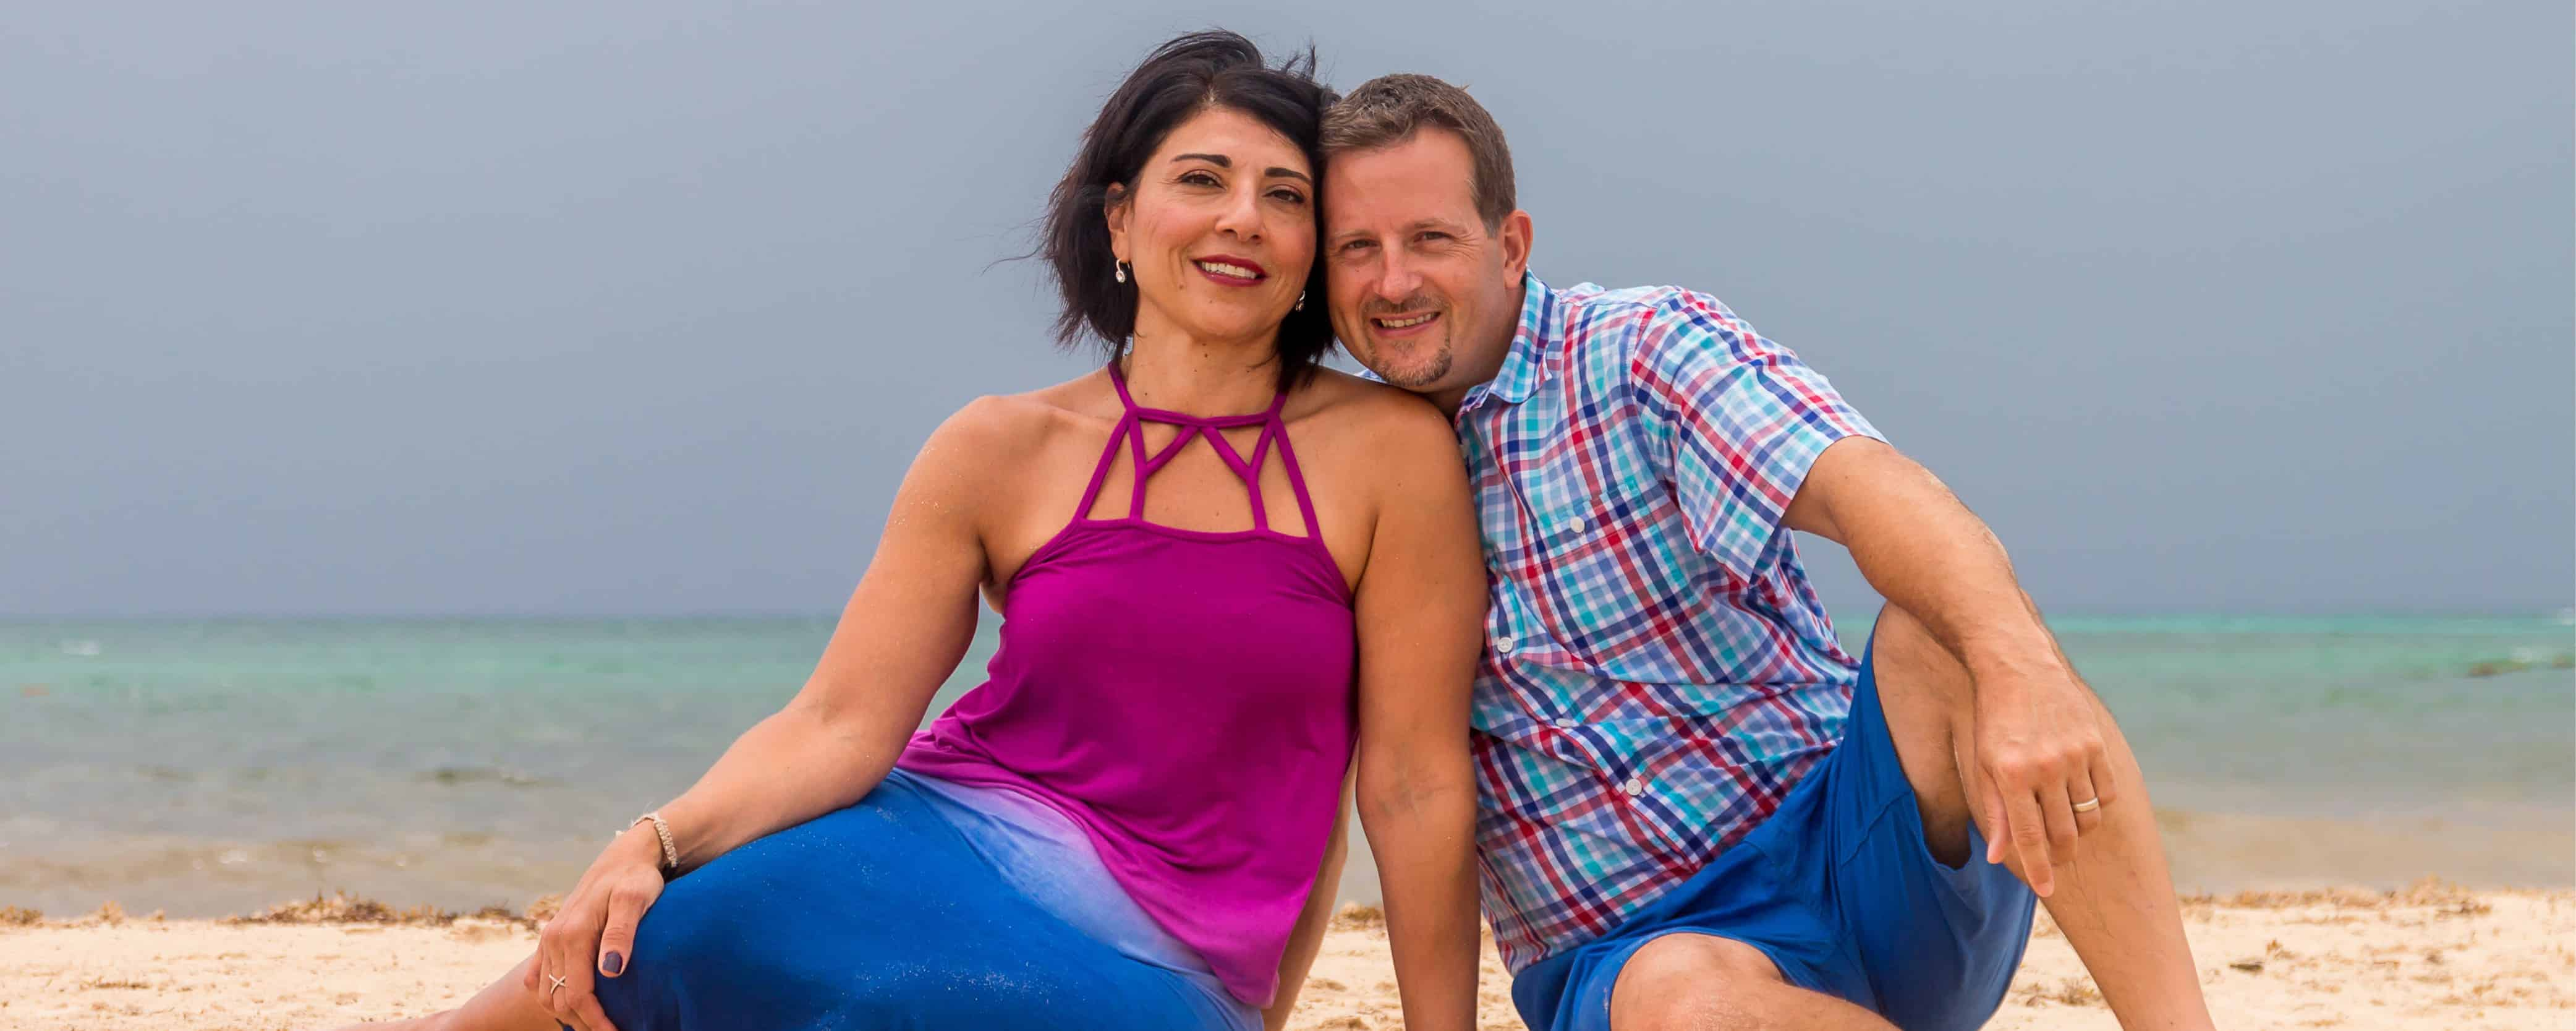 Dr. Waked and husband - Waked Dental - Strongsville